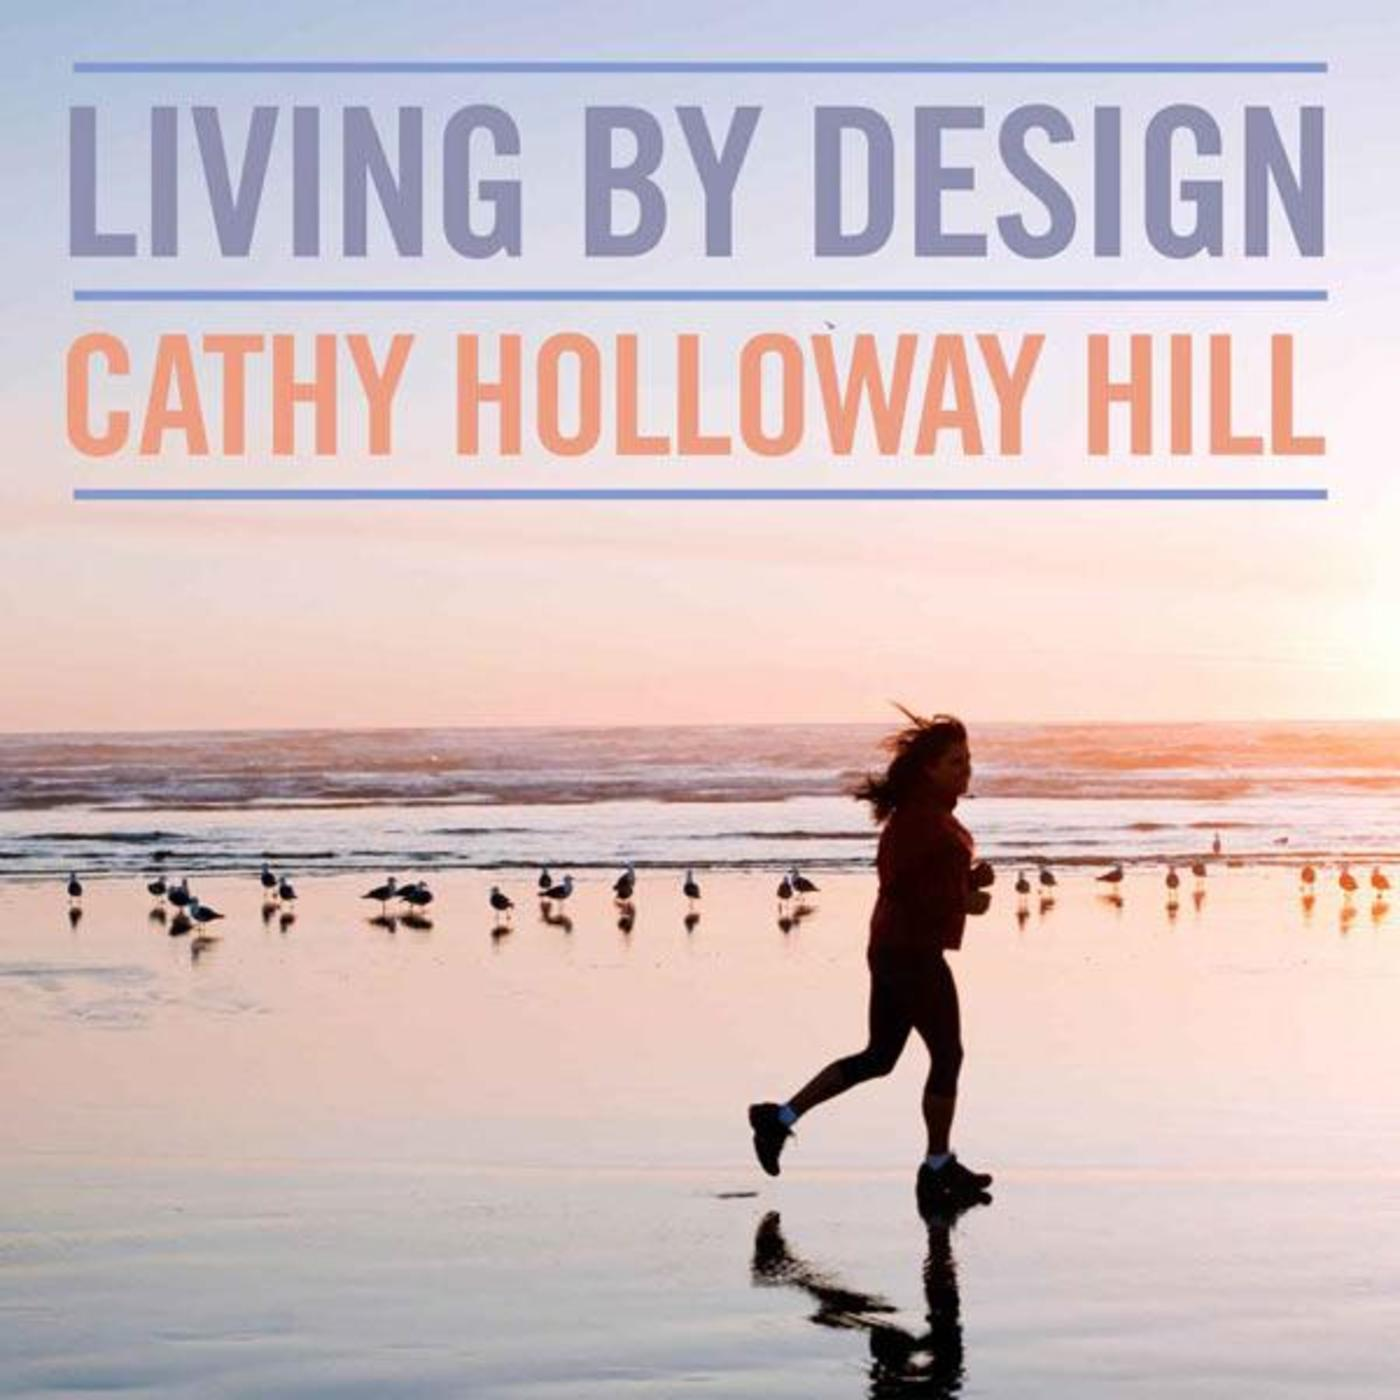 Living By Design - Cathy Holloway Hill